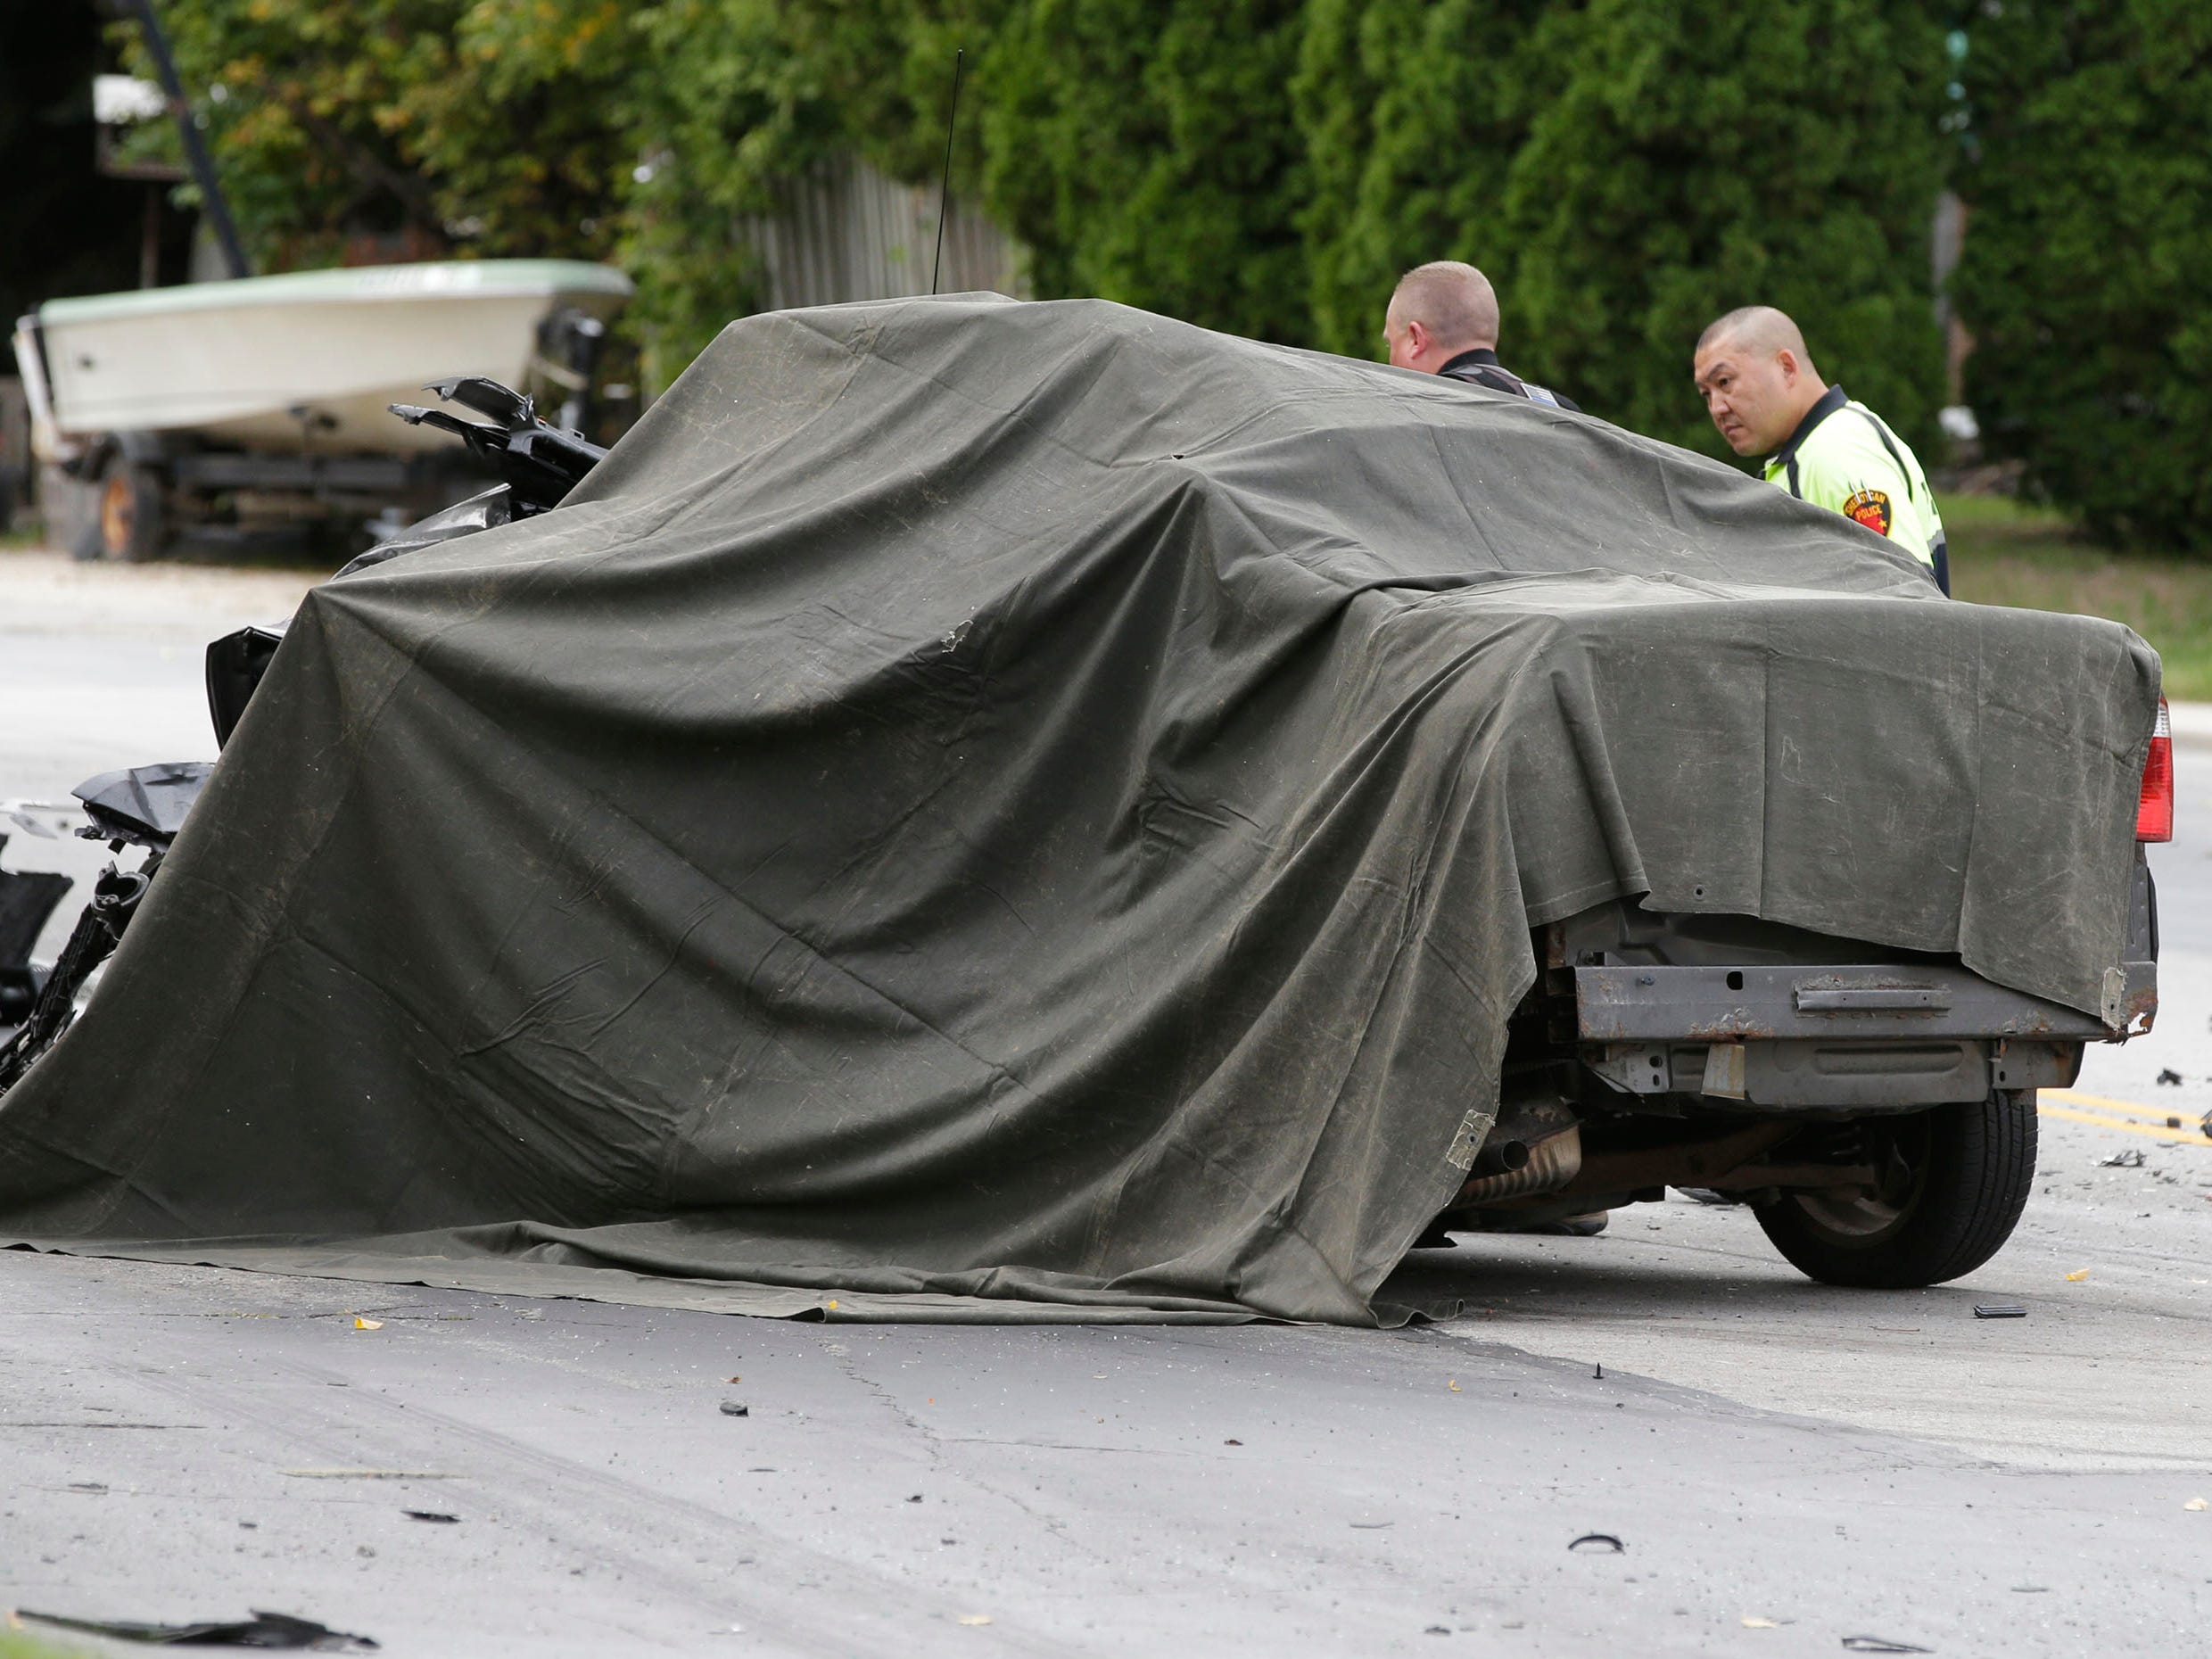 A tarp covers a vehicle at the scene of a 2-car crash on Pennsylvania Avenue between 14th and 15th streets, Tuesday, September 18, 2018, in Sheboygan, Wis. A third parked car was also struck. Two people died as a result of the crash.